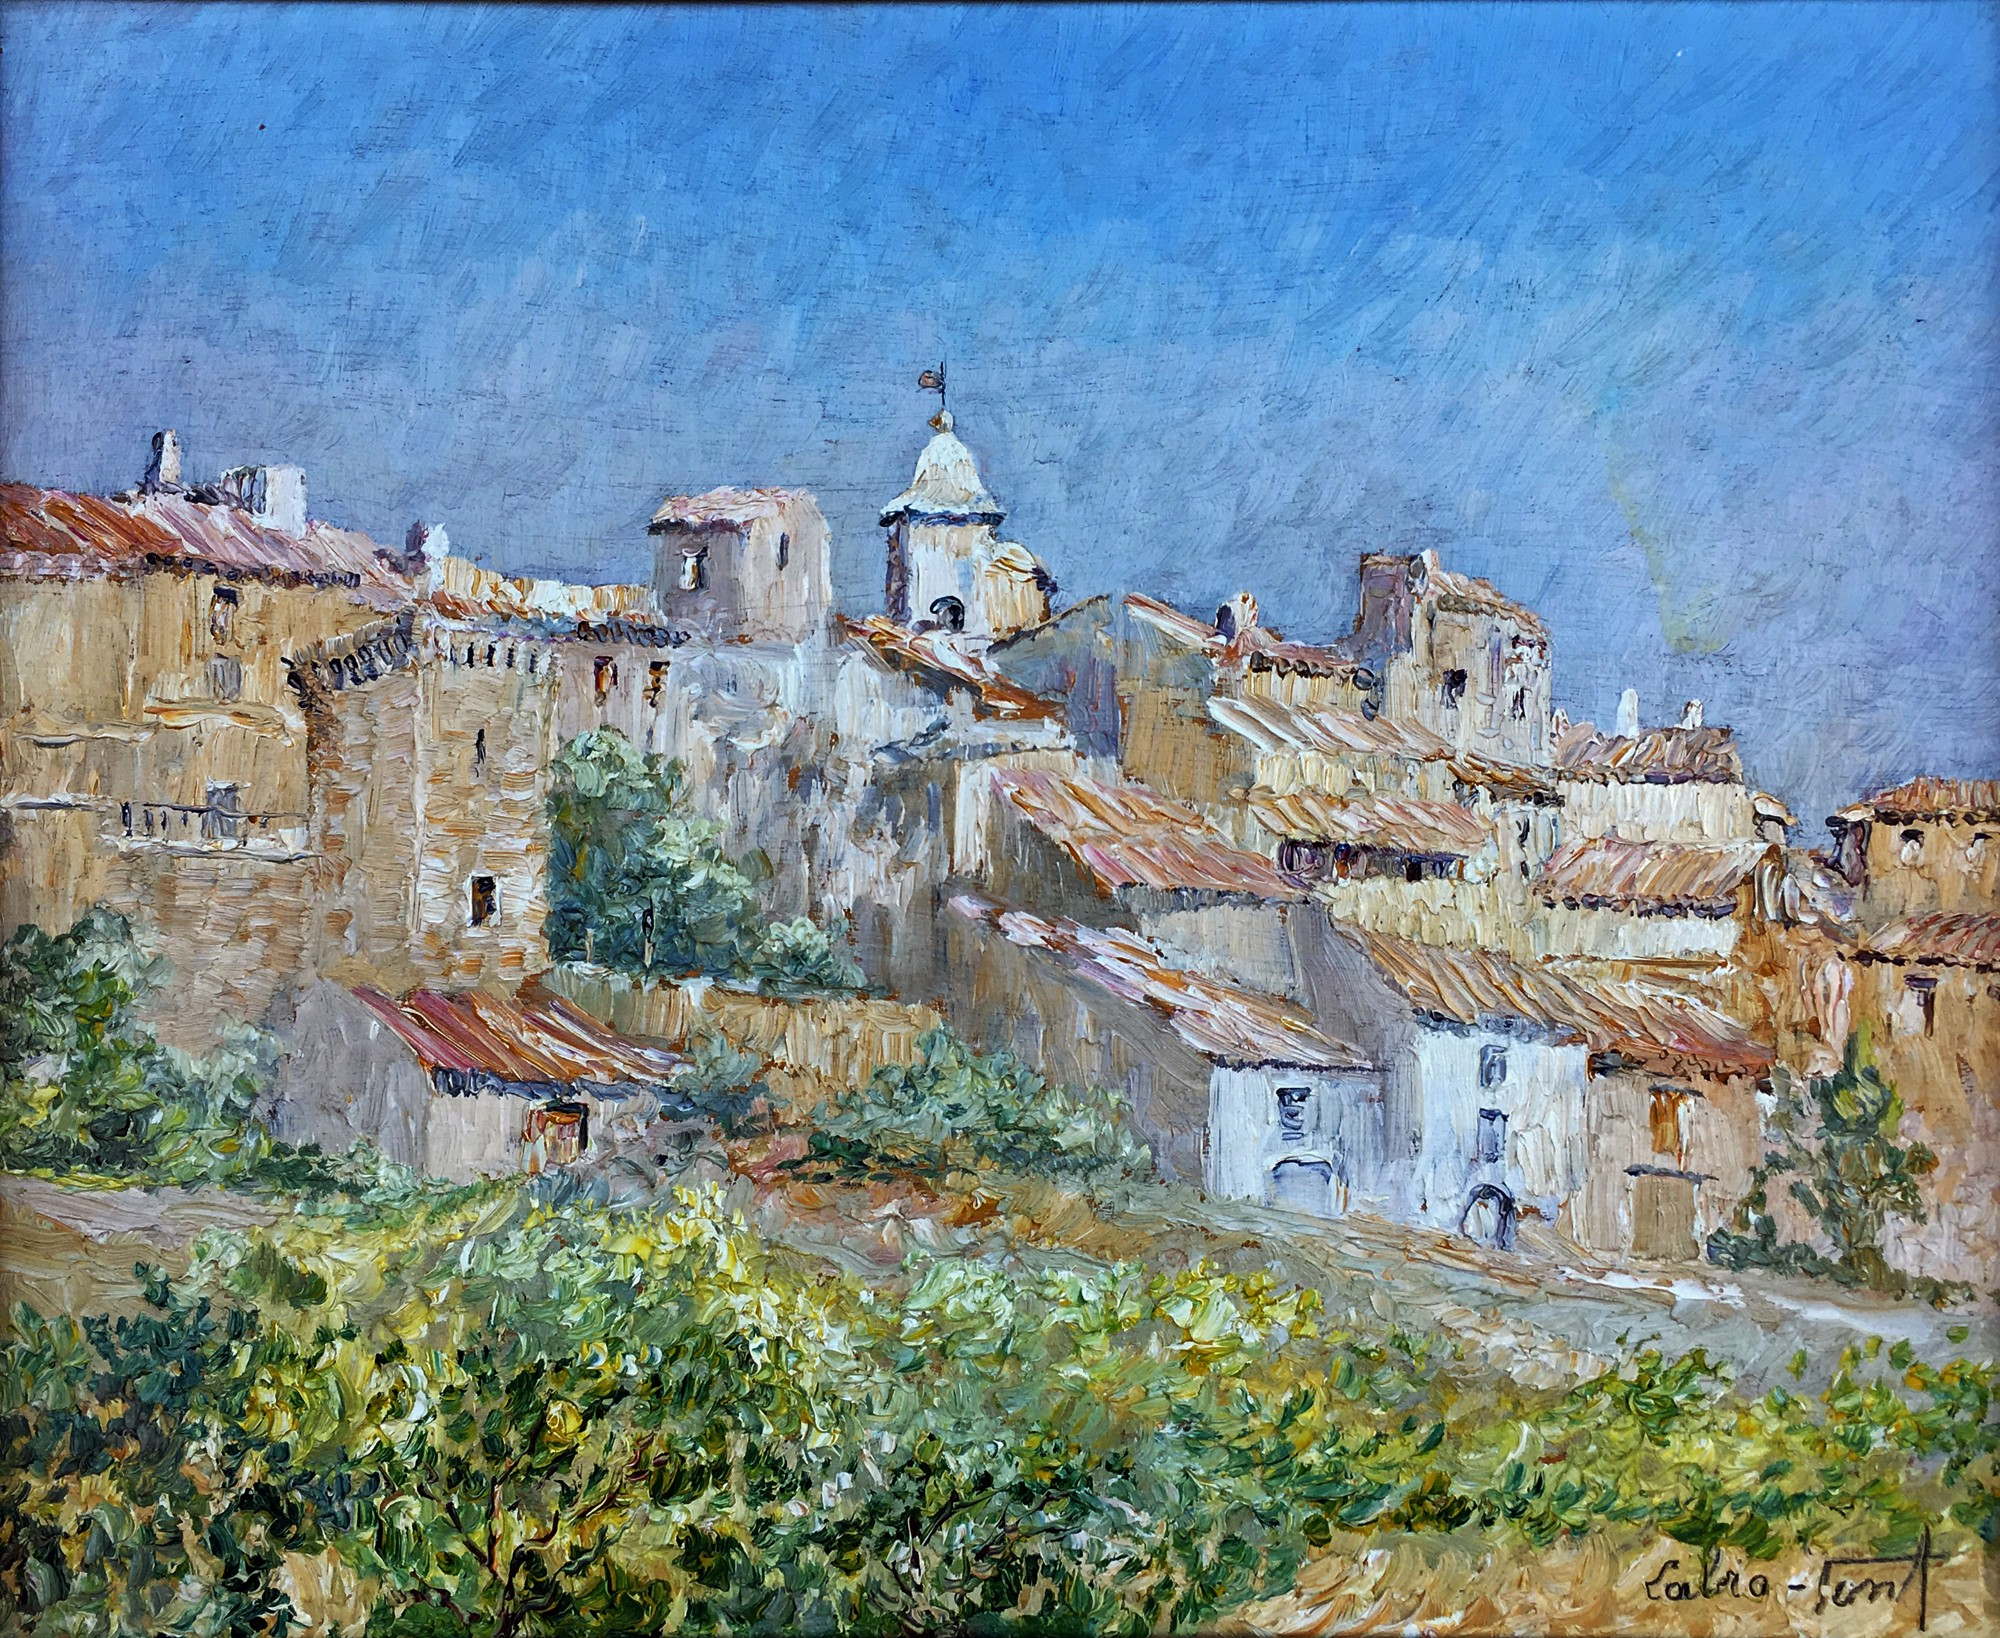 Village of Provence by LABRO-FONT